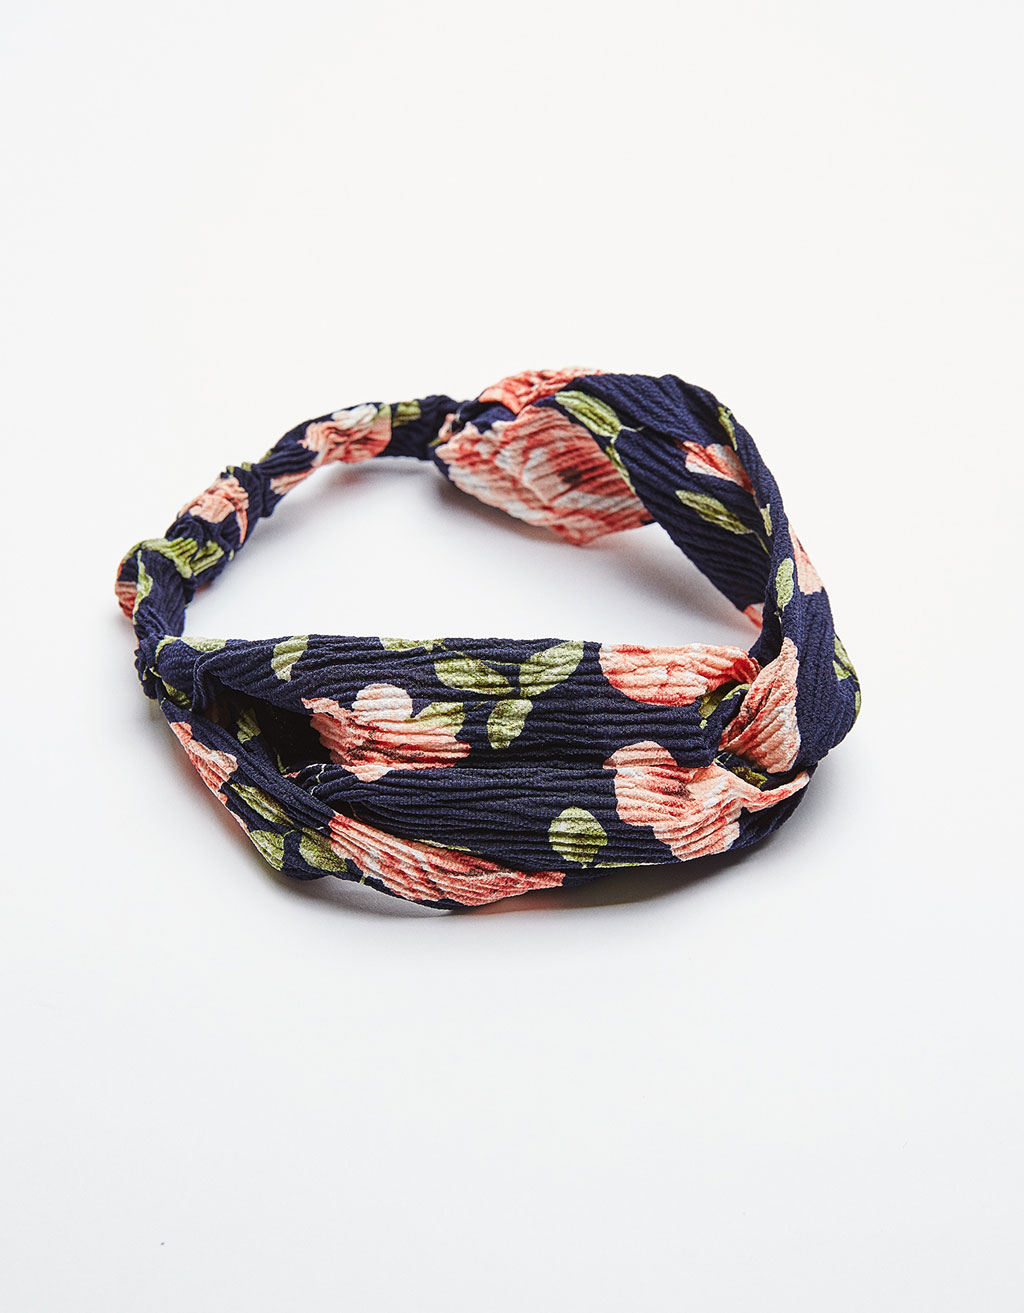 Textured turban-style headband with floral print